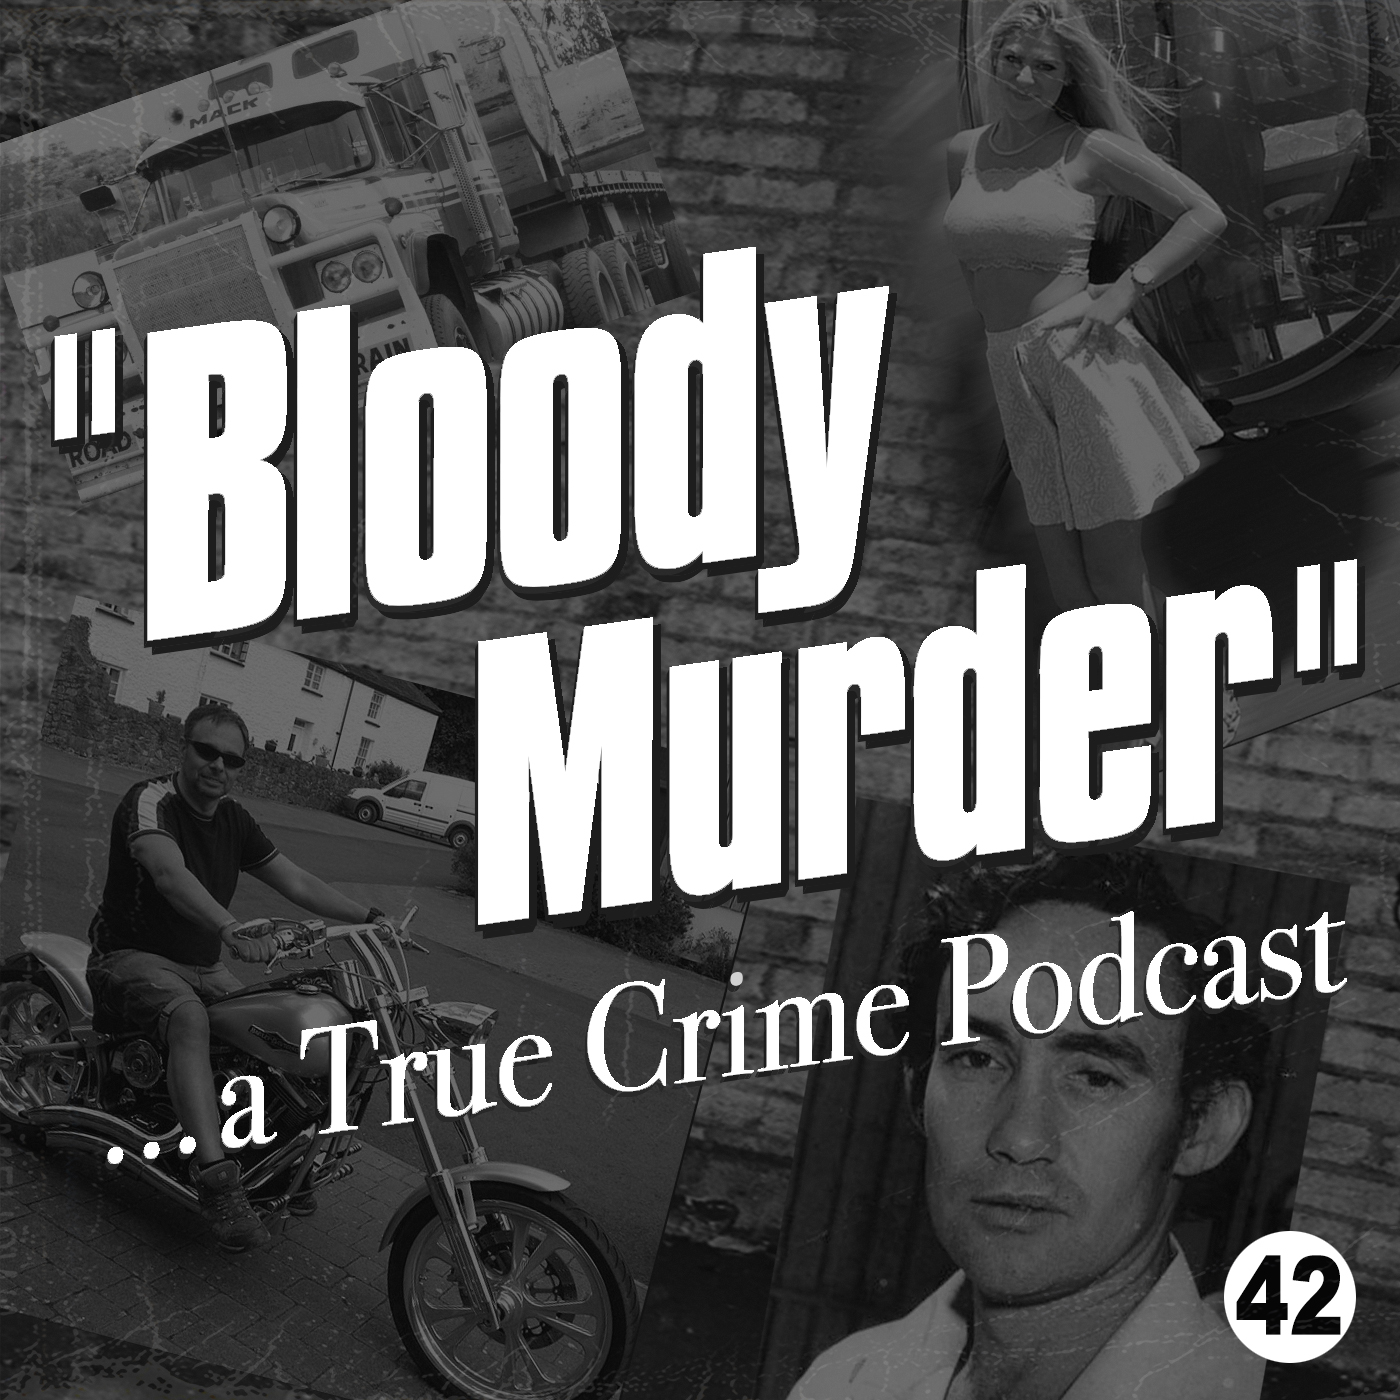 42 - Welsh Rich Pete and The Mac Truck Murders